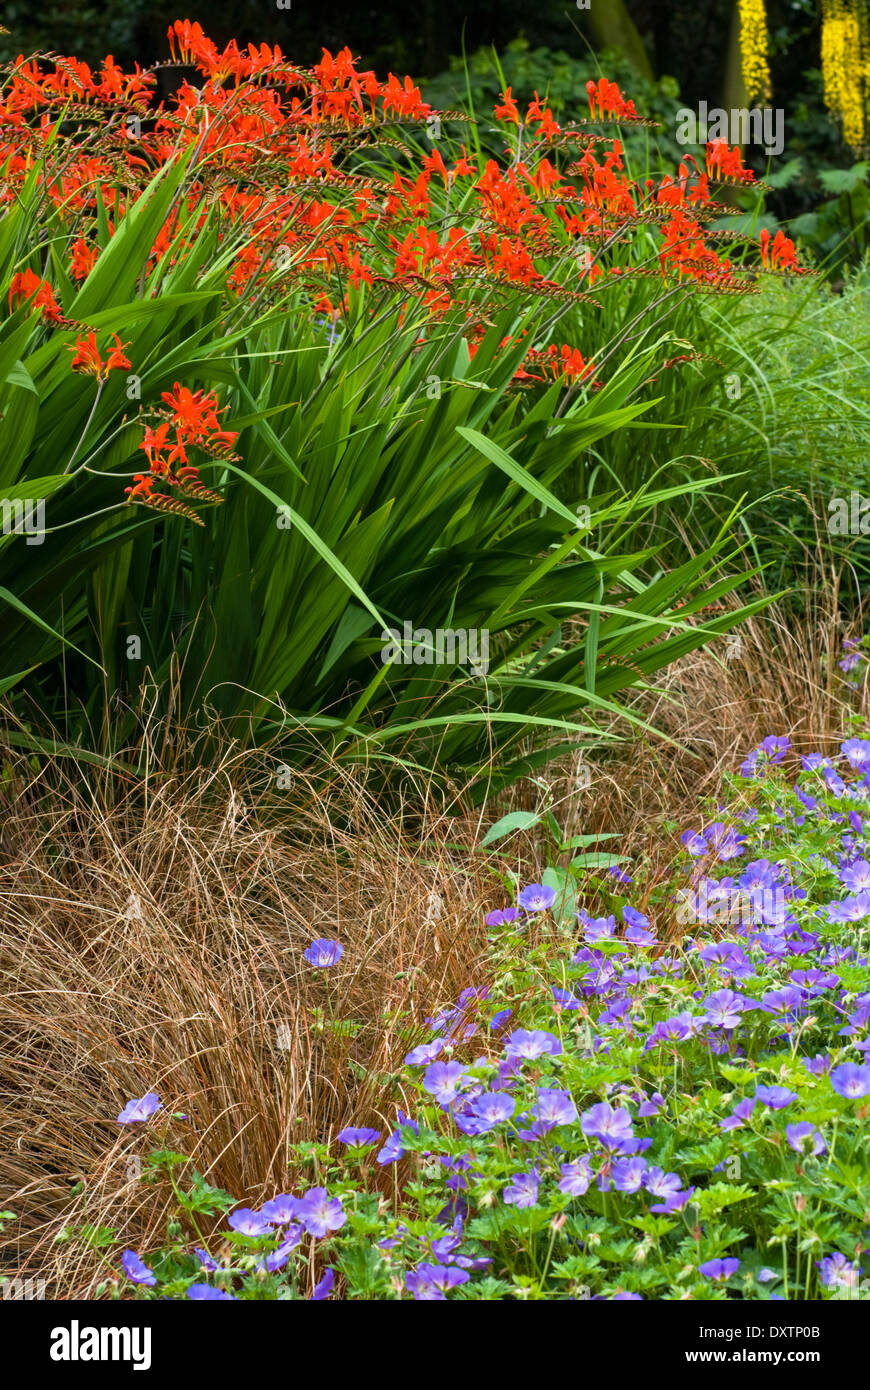 Crocosmia 'Lucifer', Montbretia and Carex comans bronze-leaved, Sedge with Geranium x Rozanne. Perennials. Association. Stock Photo